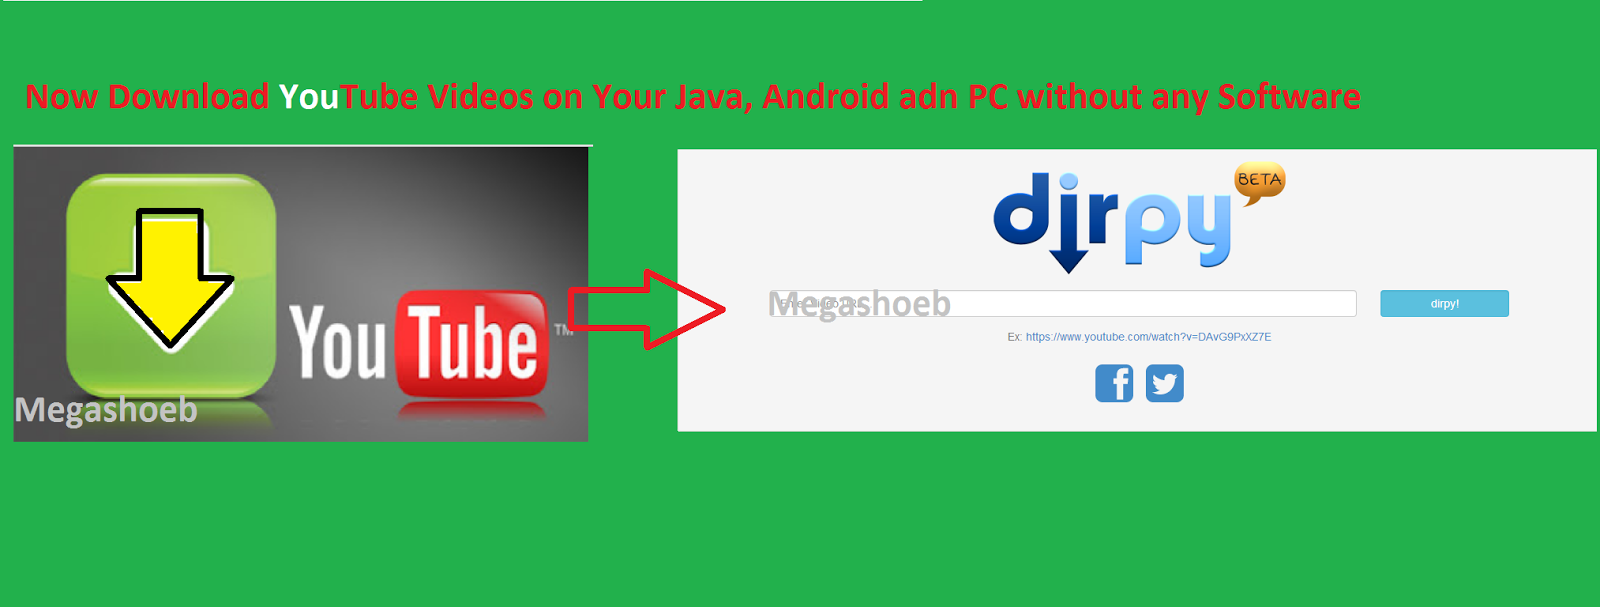 How to Download YouTube Videos Without Any Software on Java